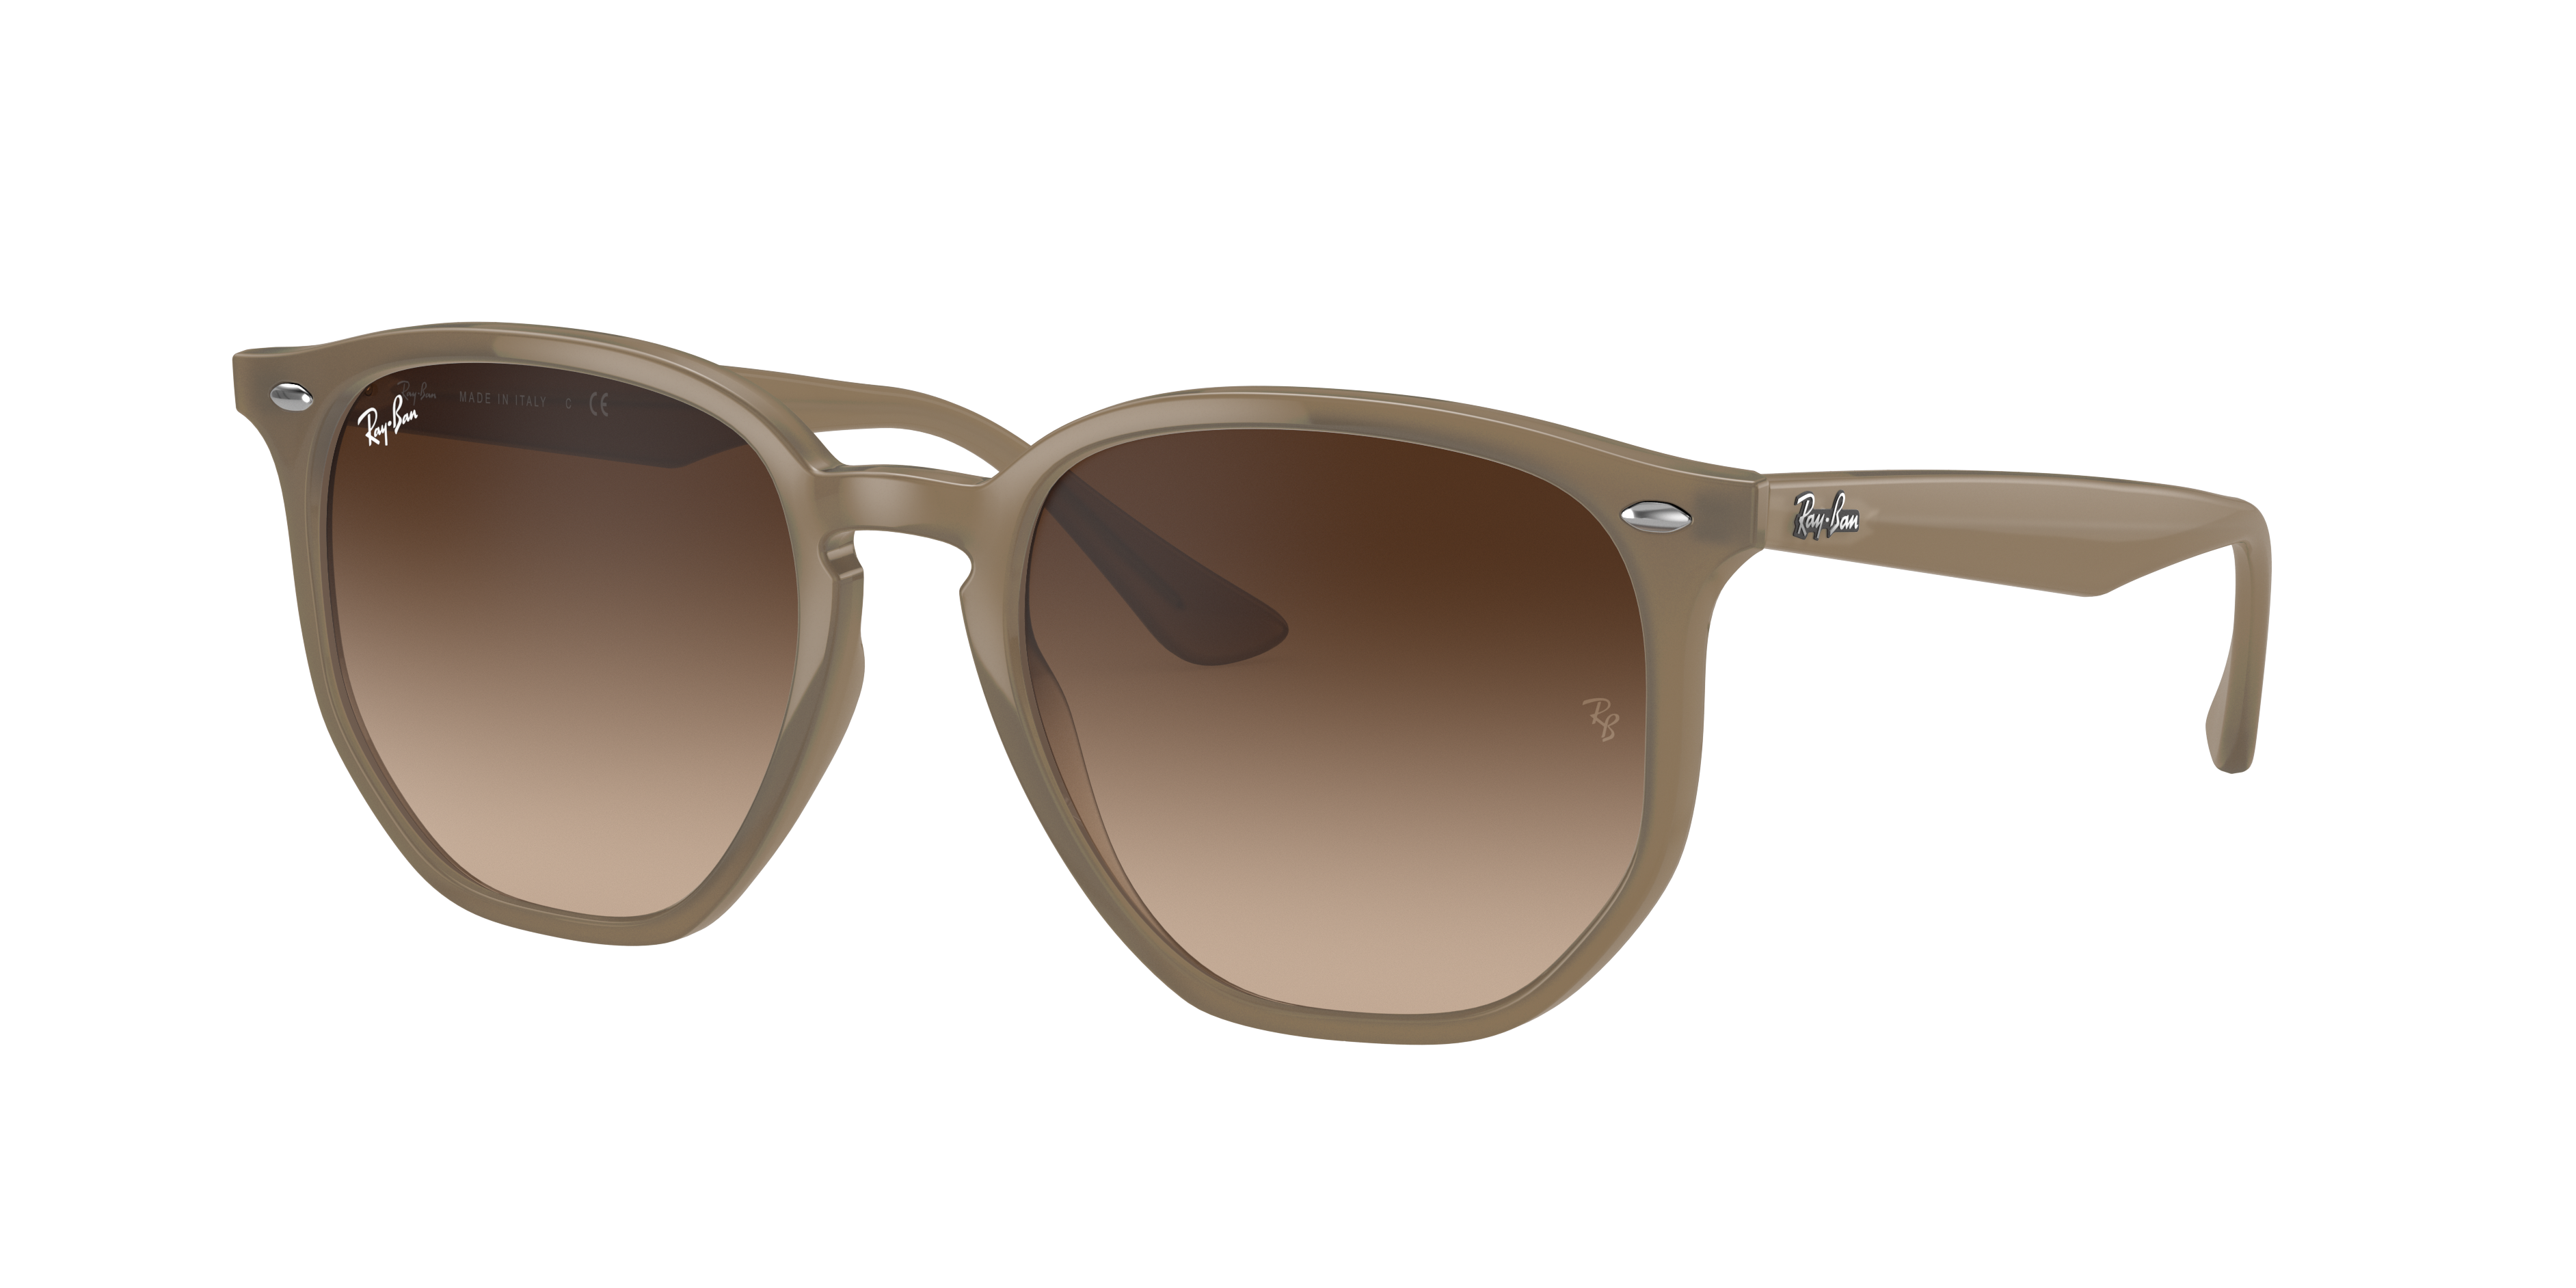 Ray-Ban Rb4306 Beige, Brown Lenses - RB4306